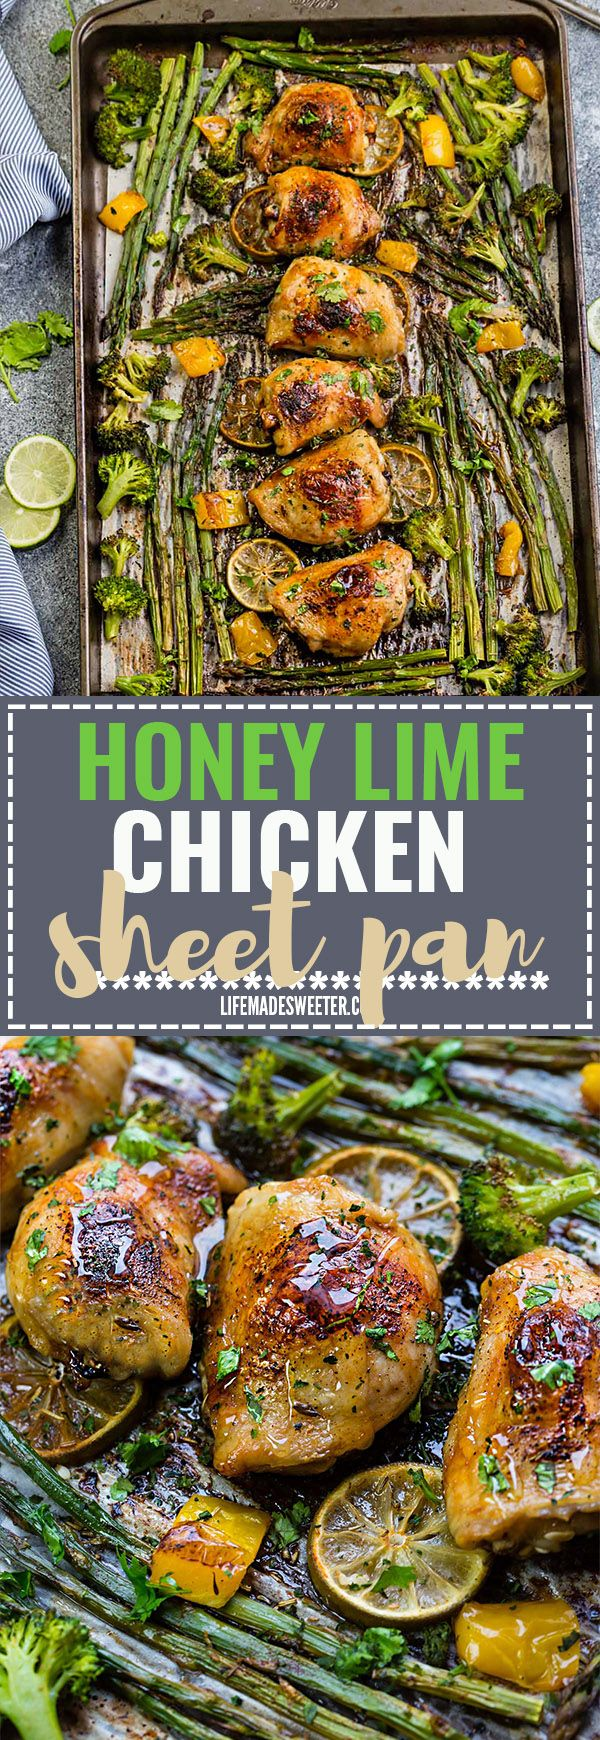 Honey Lime Chicken | Easy Sheet Pan Chicken Dinner Recipe